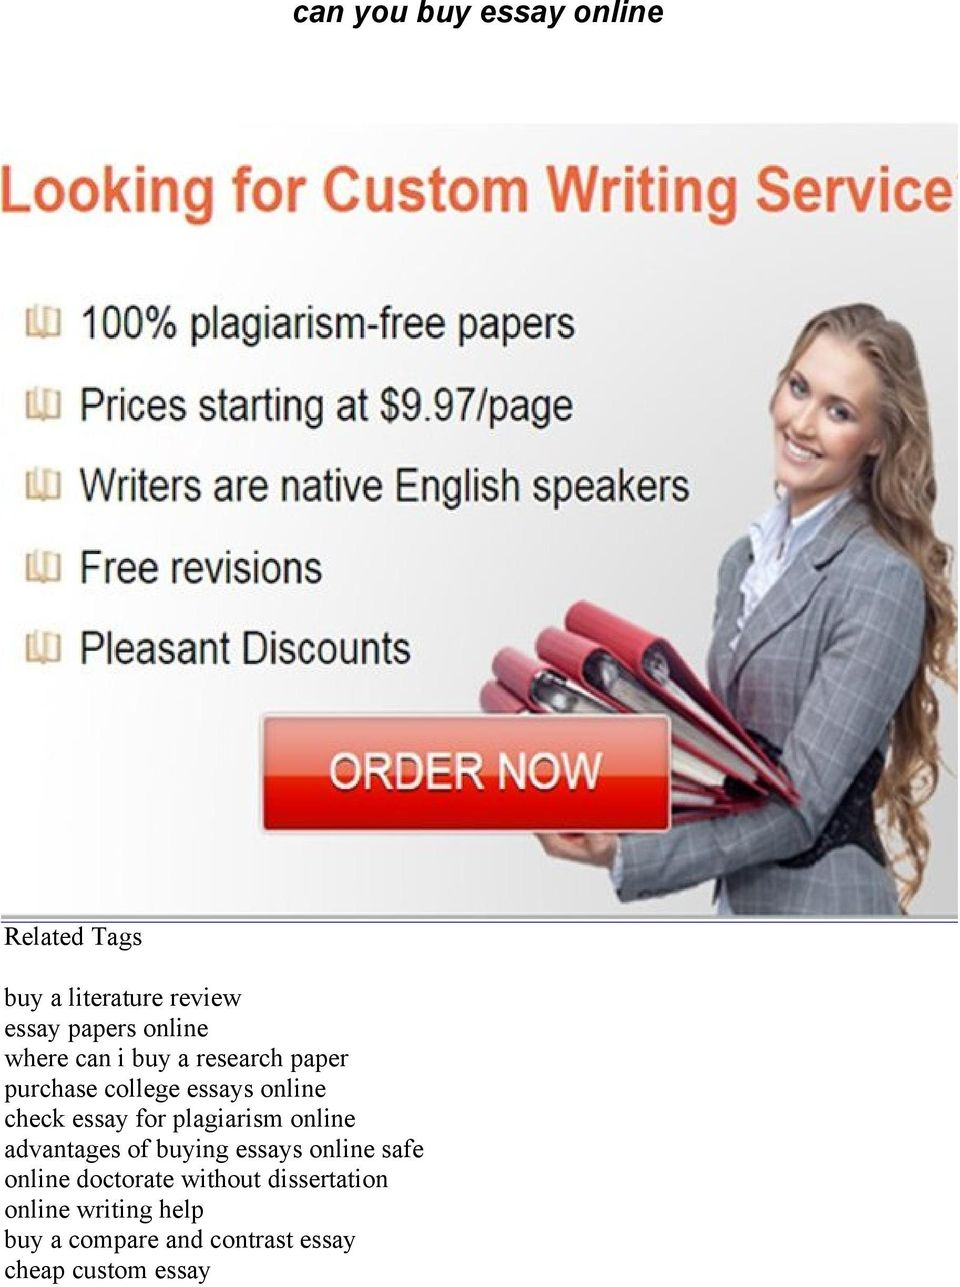 Essay On English Teacher Advantages Of Buying Essays Online Safe Sample Essay Paper also Example Proposal Essay Advantages Of Buying Essays Online Safe  Is It A Good Idea Essays Topics In English